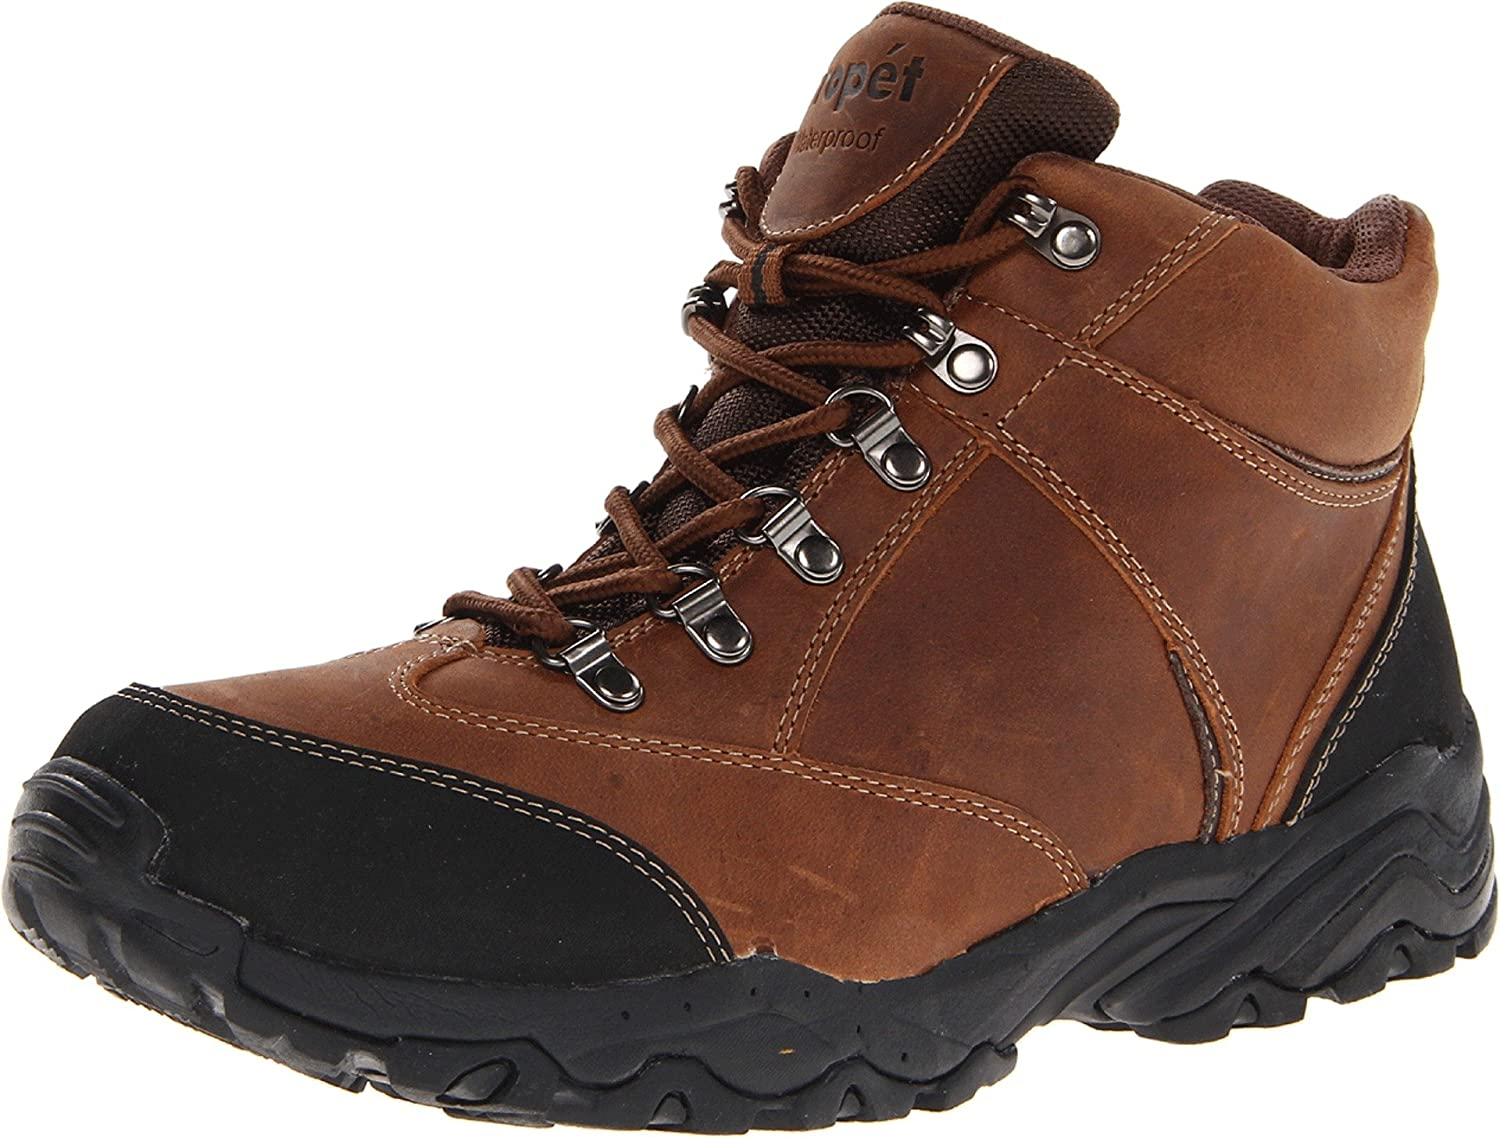 Propet Men s Navigator Hiking Boots